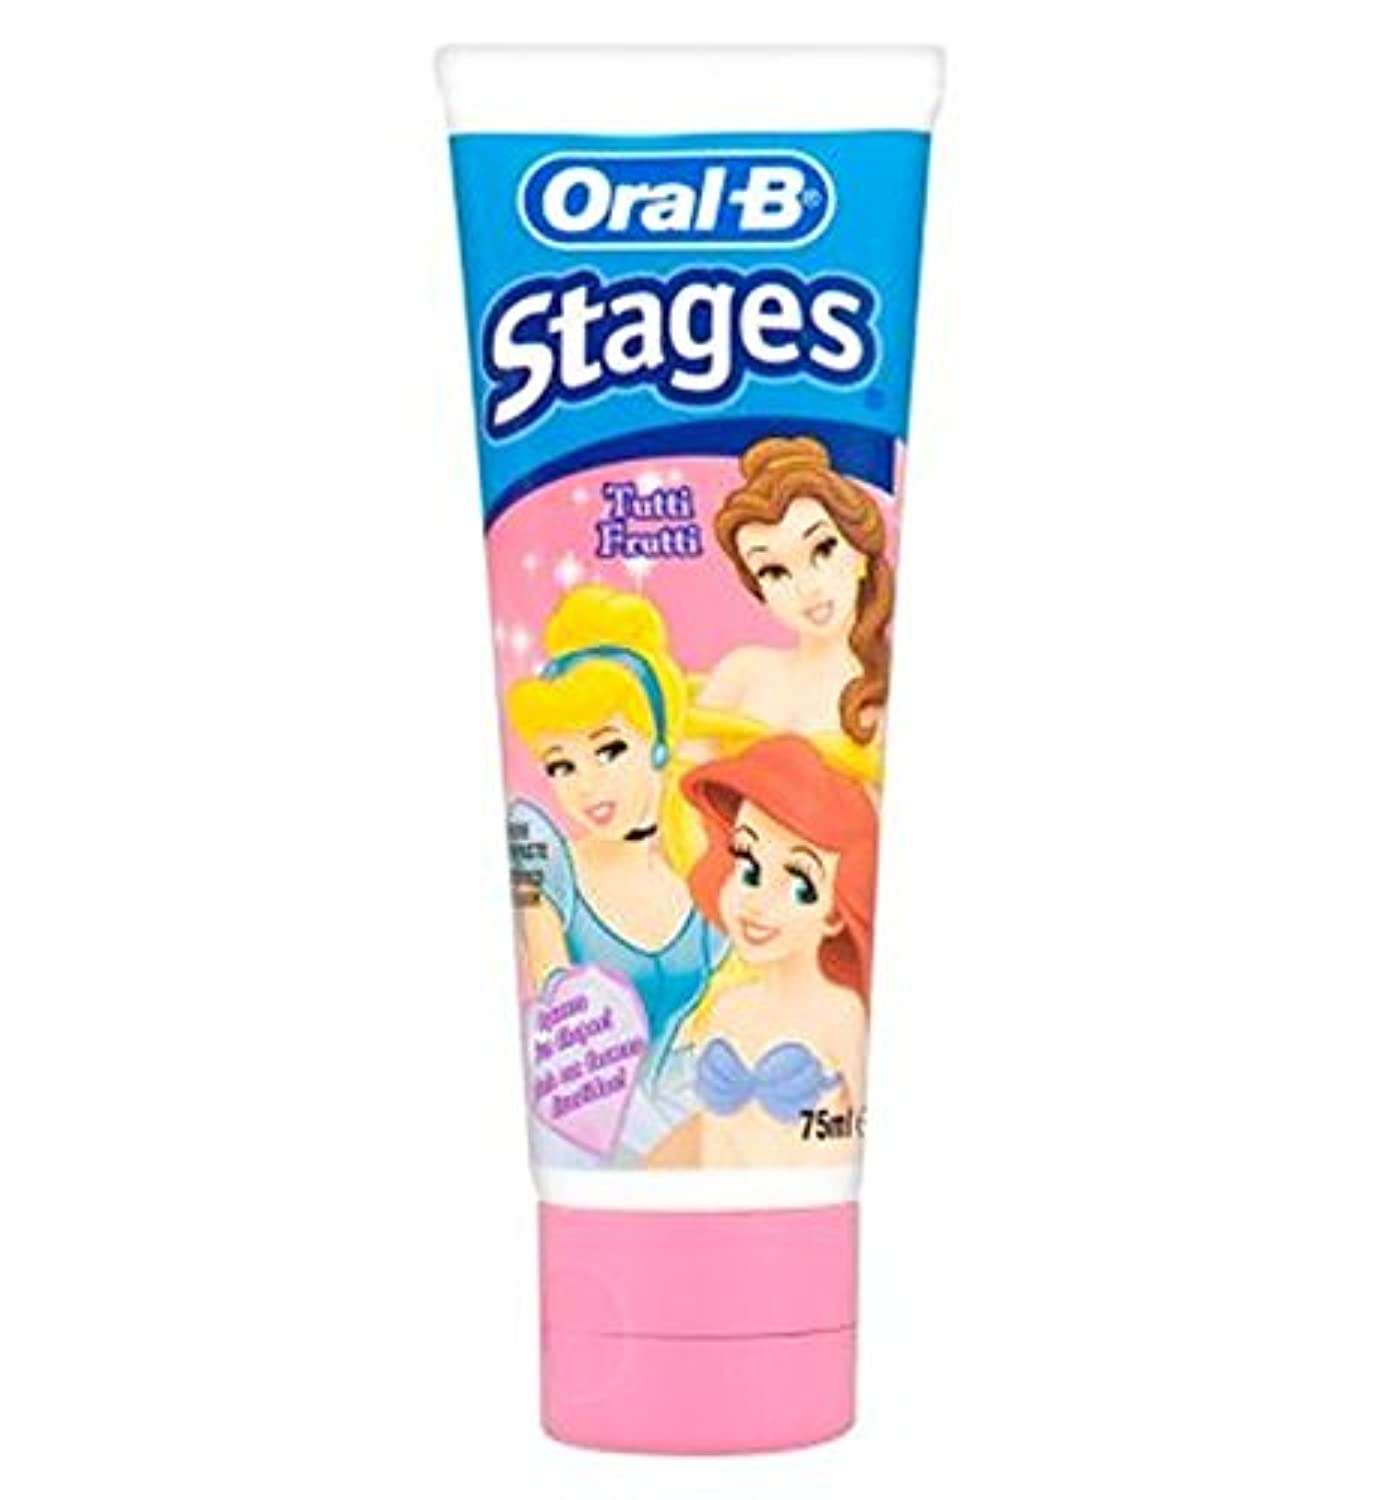 Oral-B Stages Toothpaste 75ml - オーラルBは、歯磨き粉の75ミリリットルをステージ (Oral B) [並行輸入品]